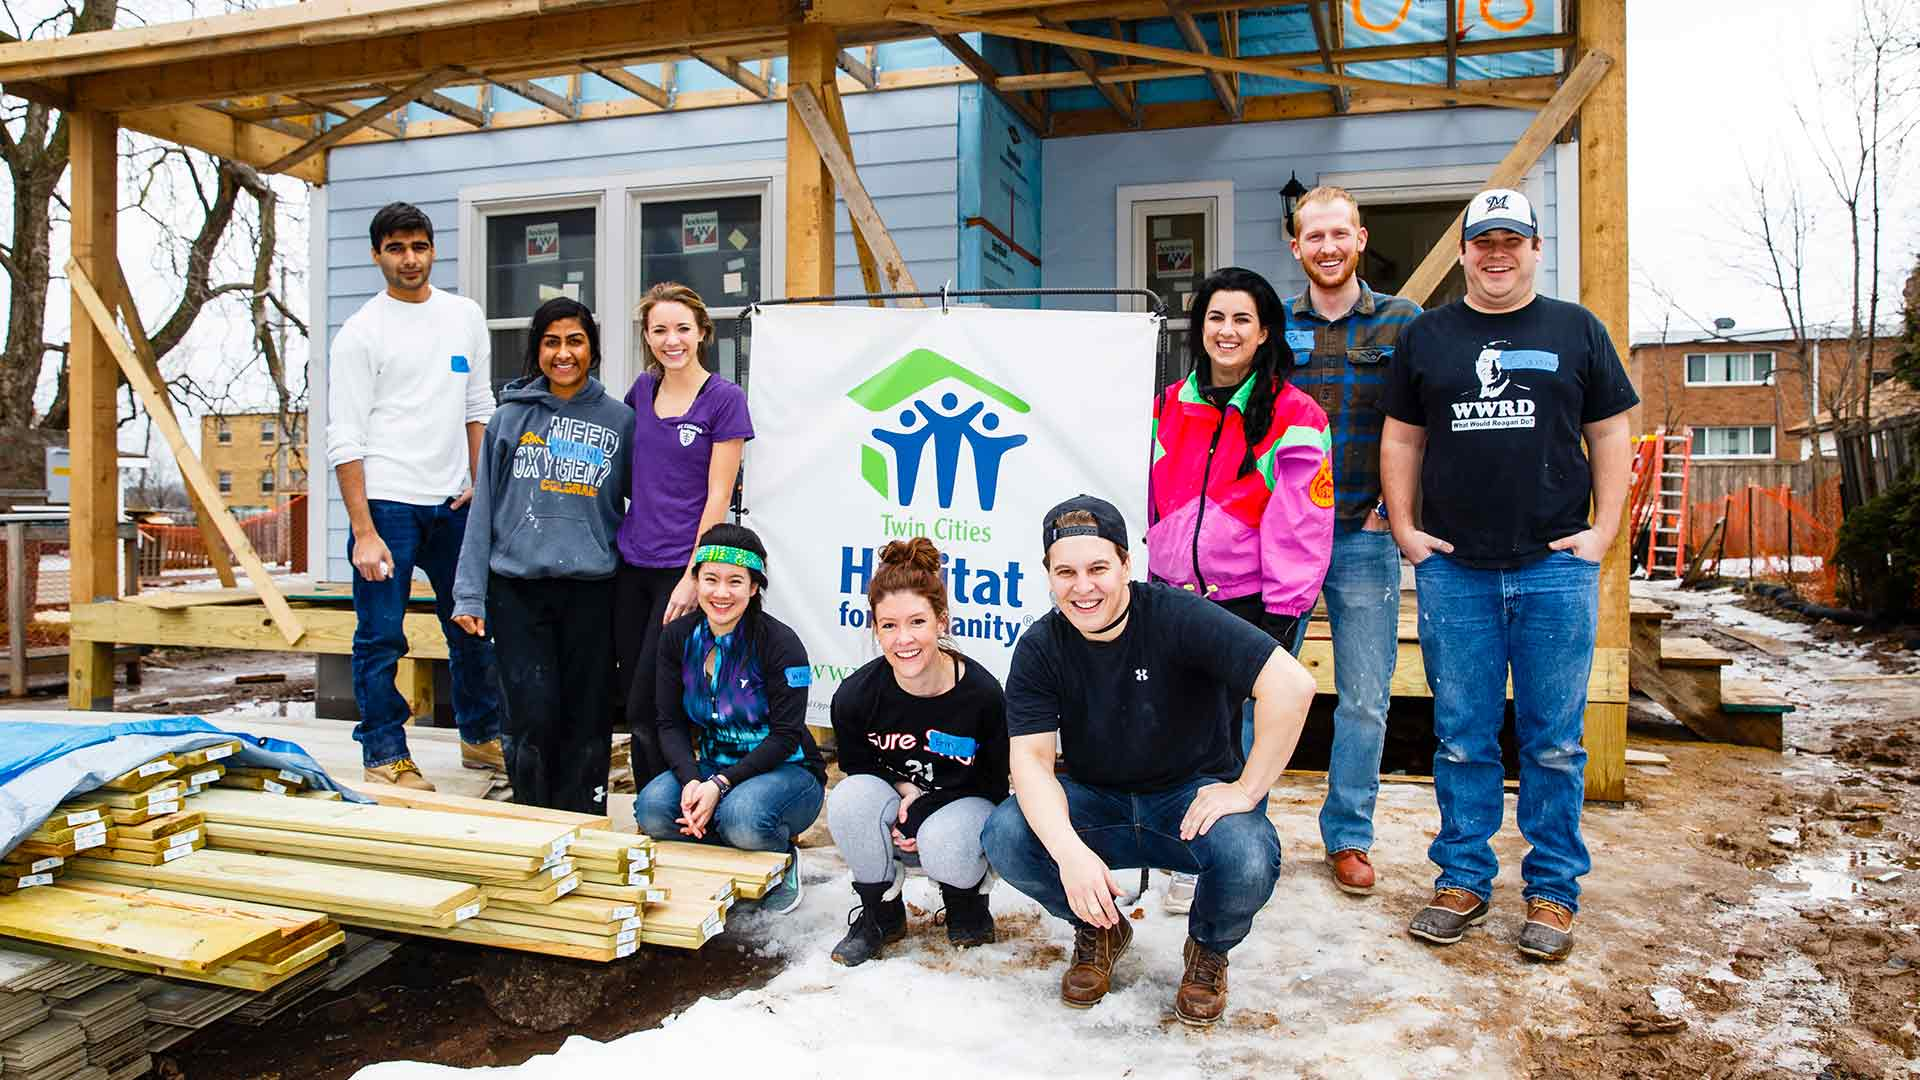 Students pose outside a Habitat for Humanity home during a service project.